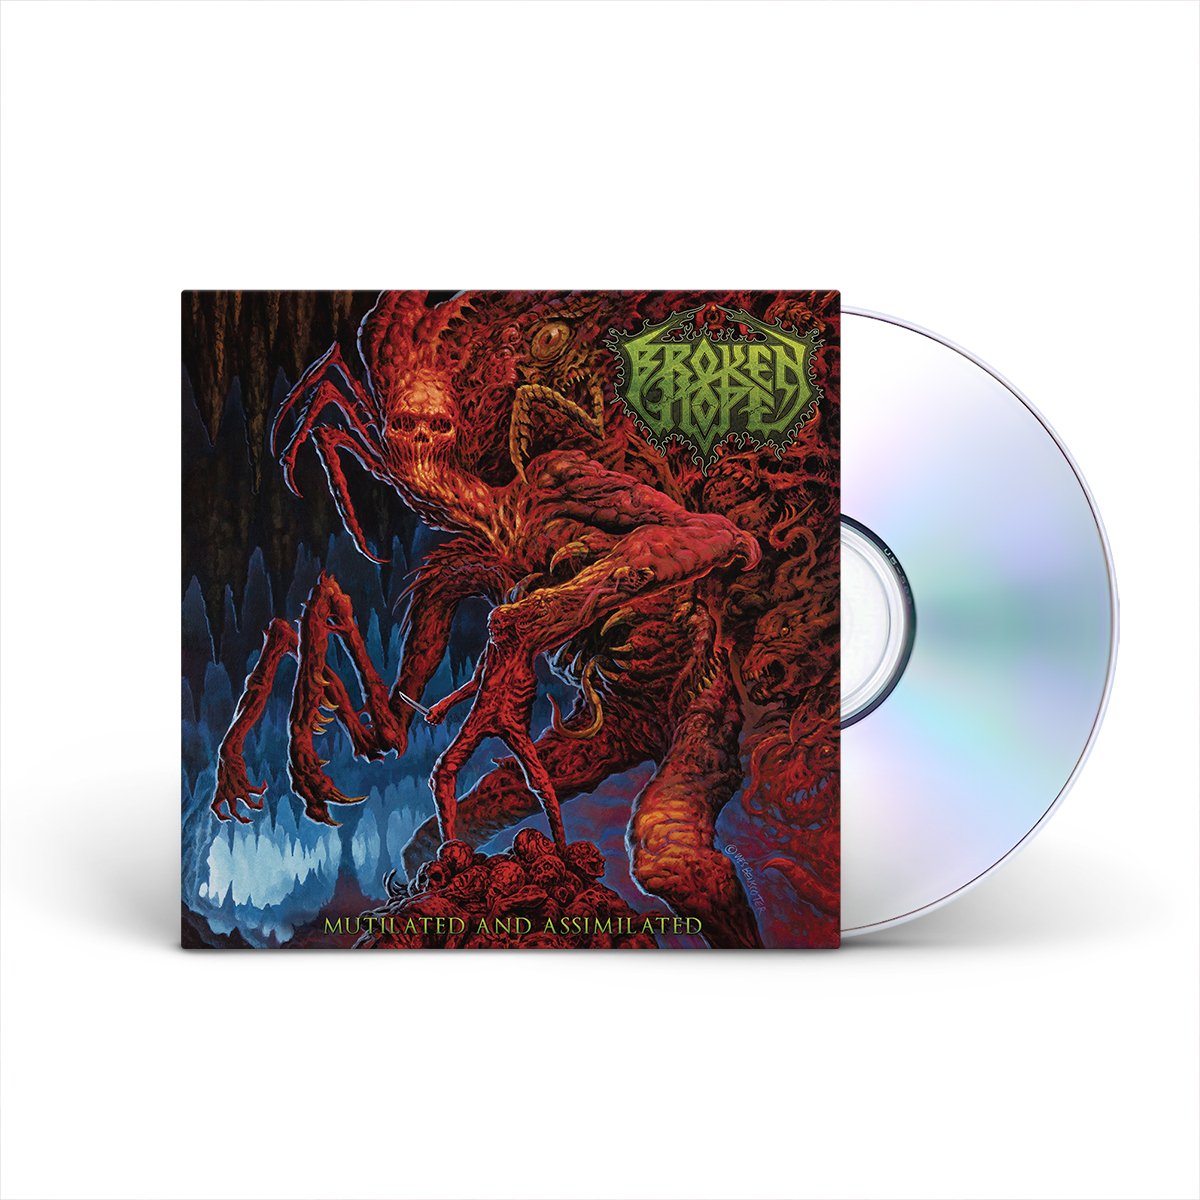 Broken Hope - Mutilated and Assimilated Limited Edition CD